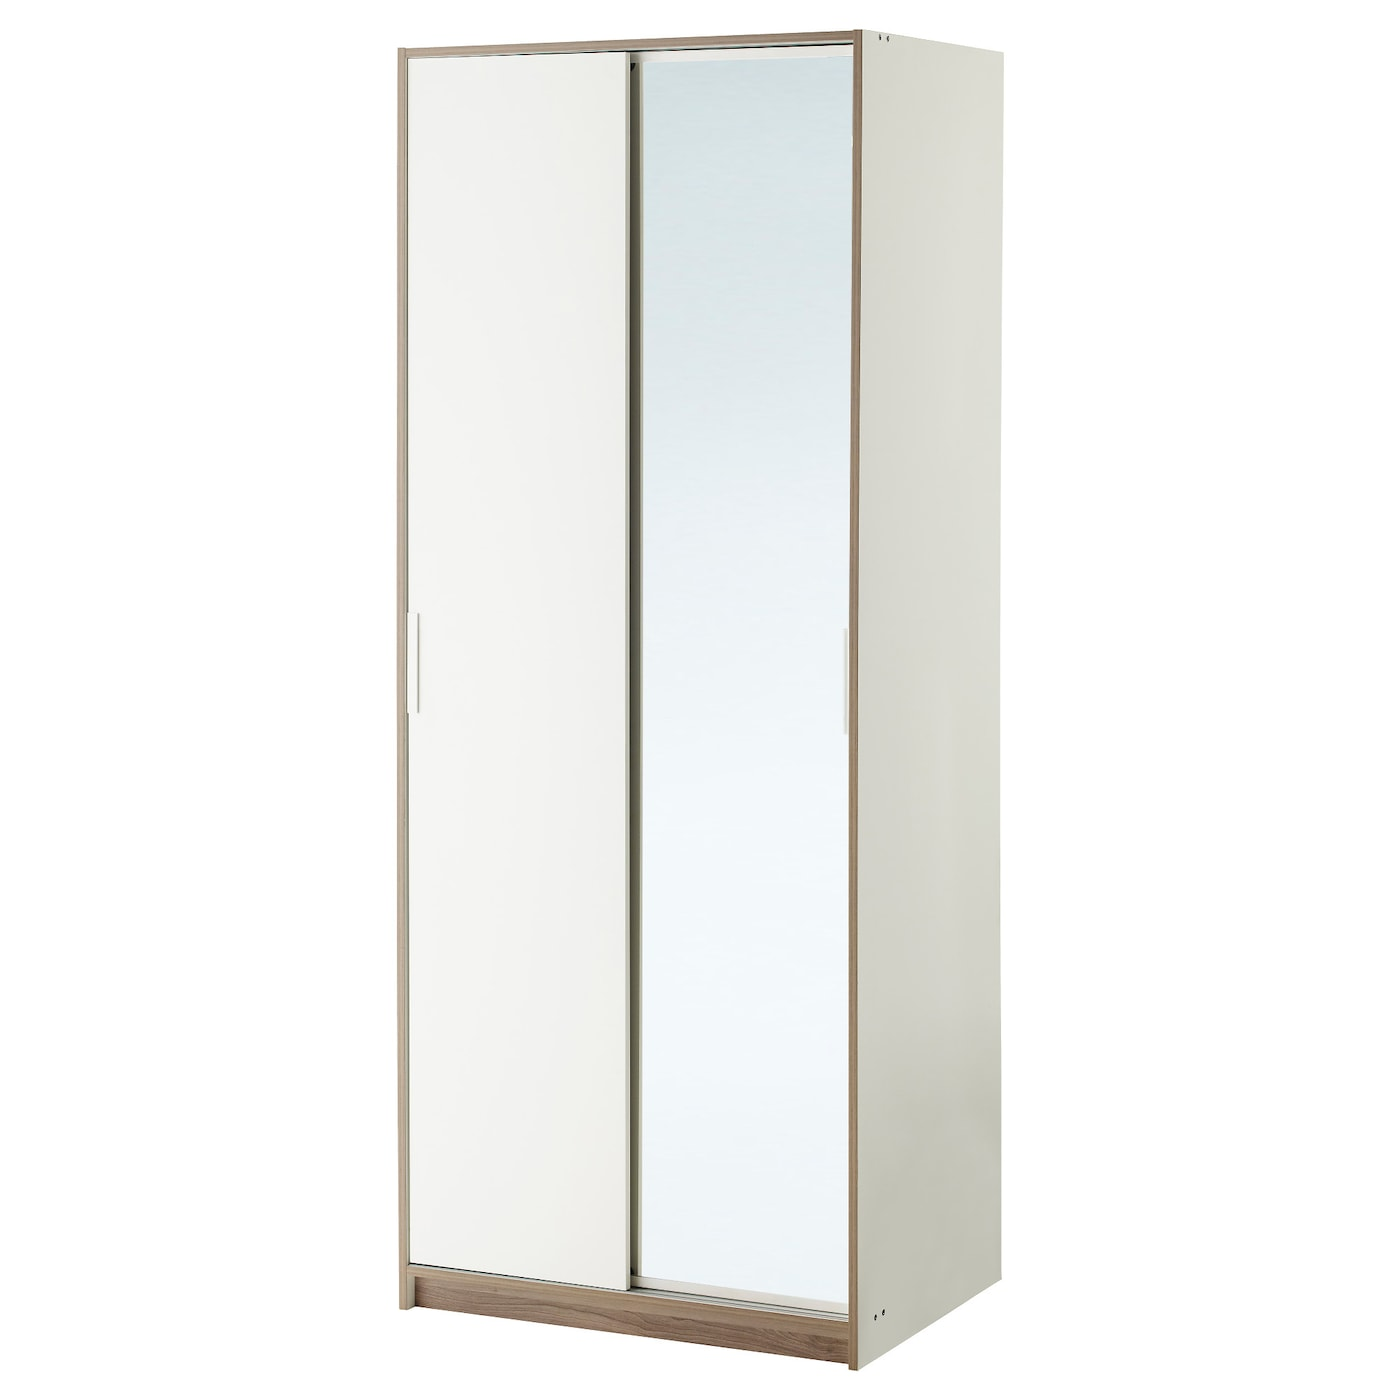 trysil wardrobe white mirror glass 79x61x202 cm ikea. Black Bedroom Furniture Sets. Home Design Ideas